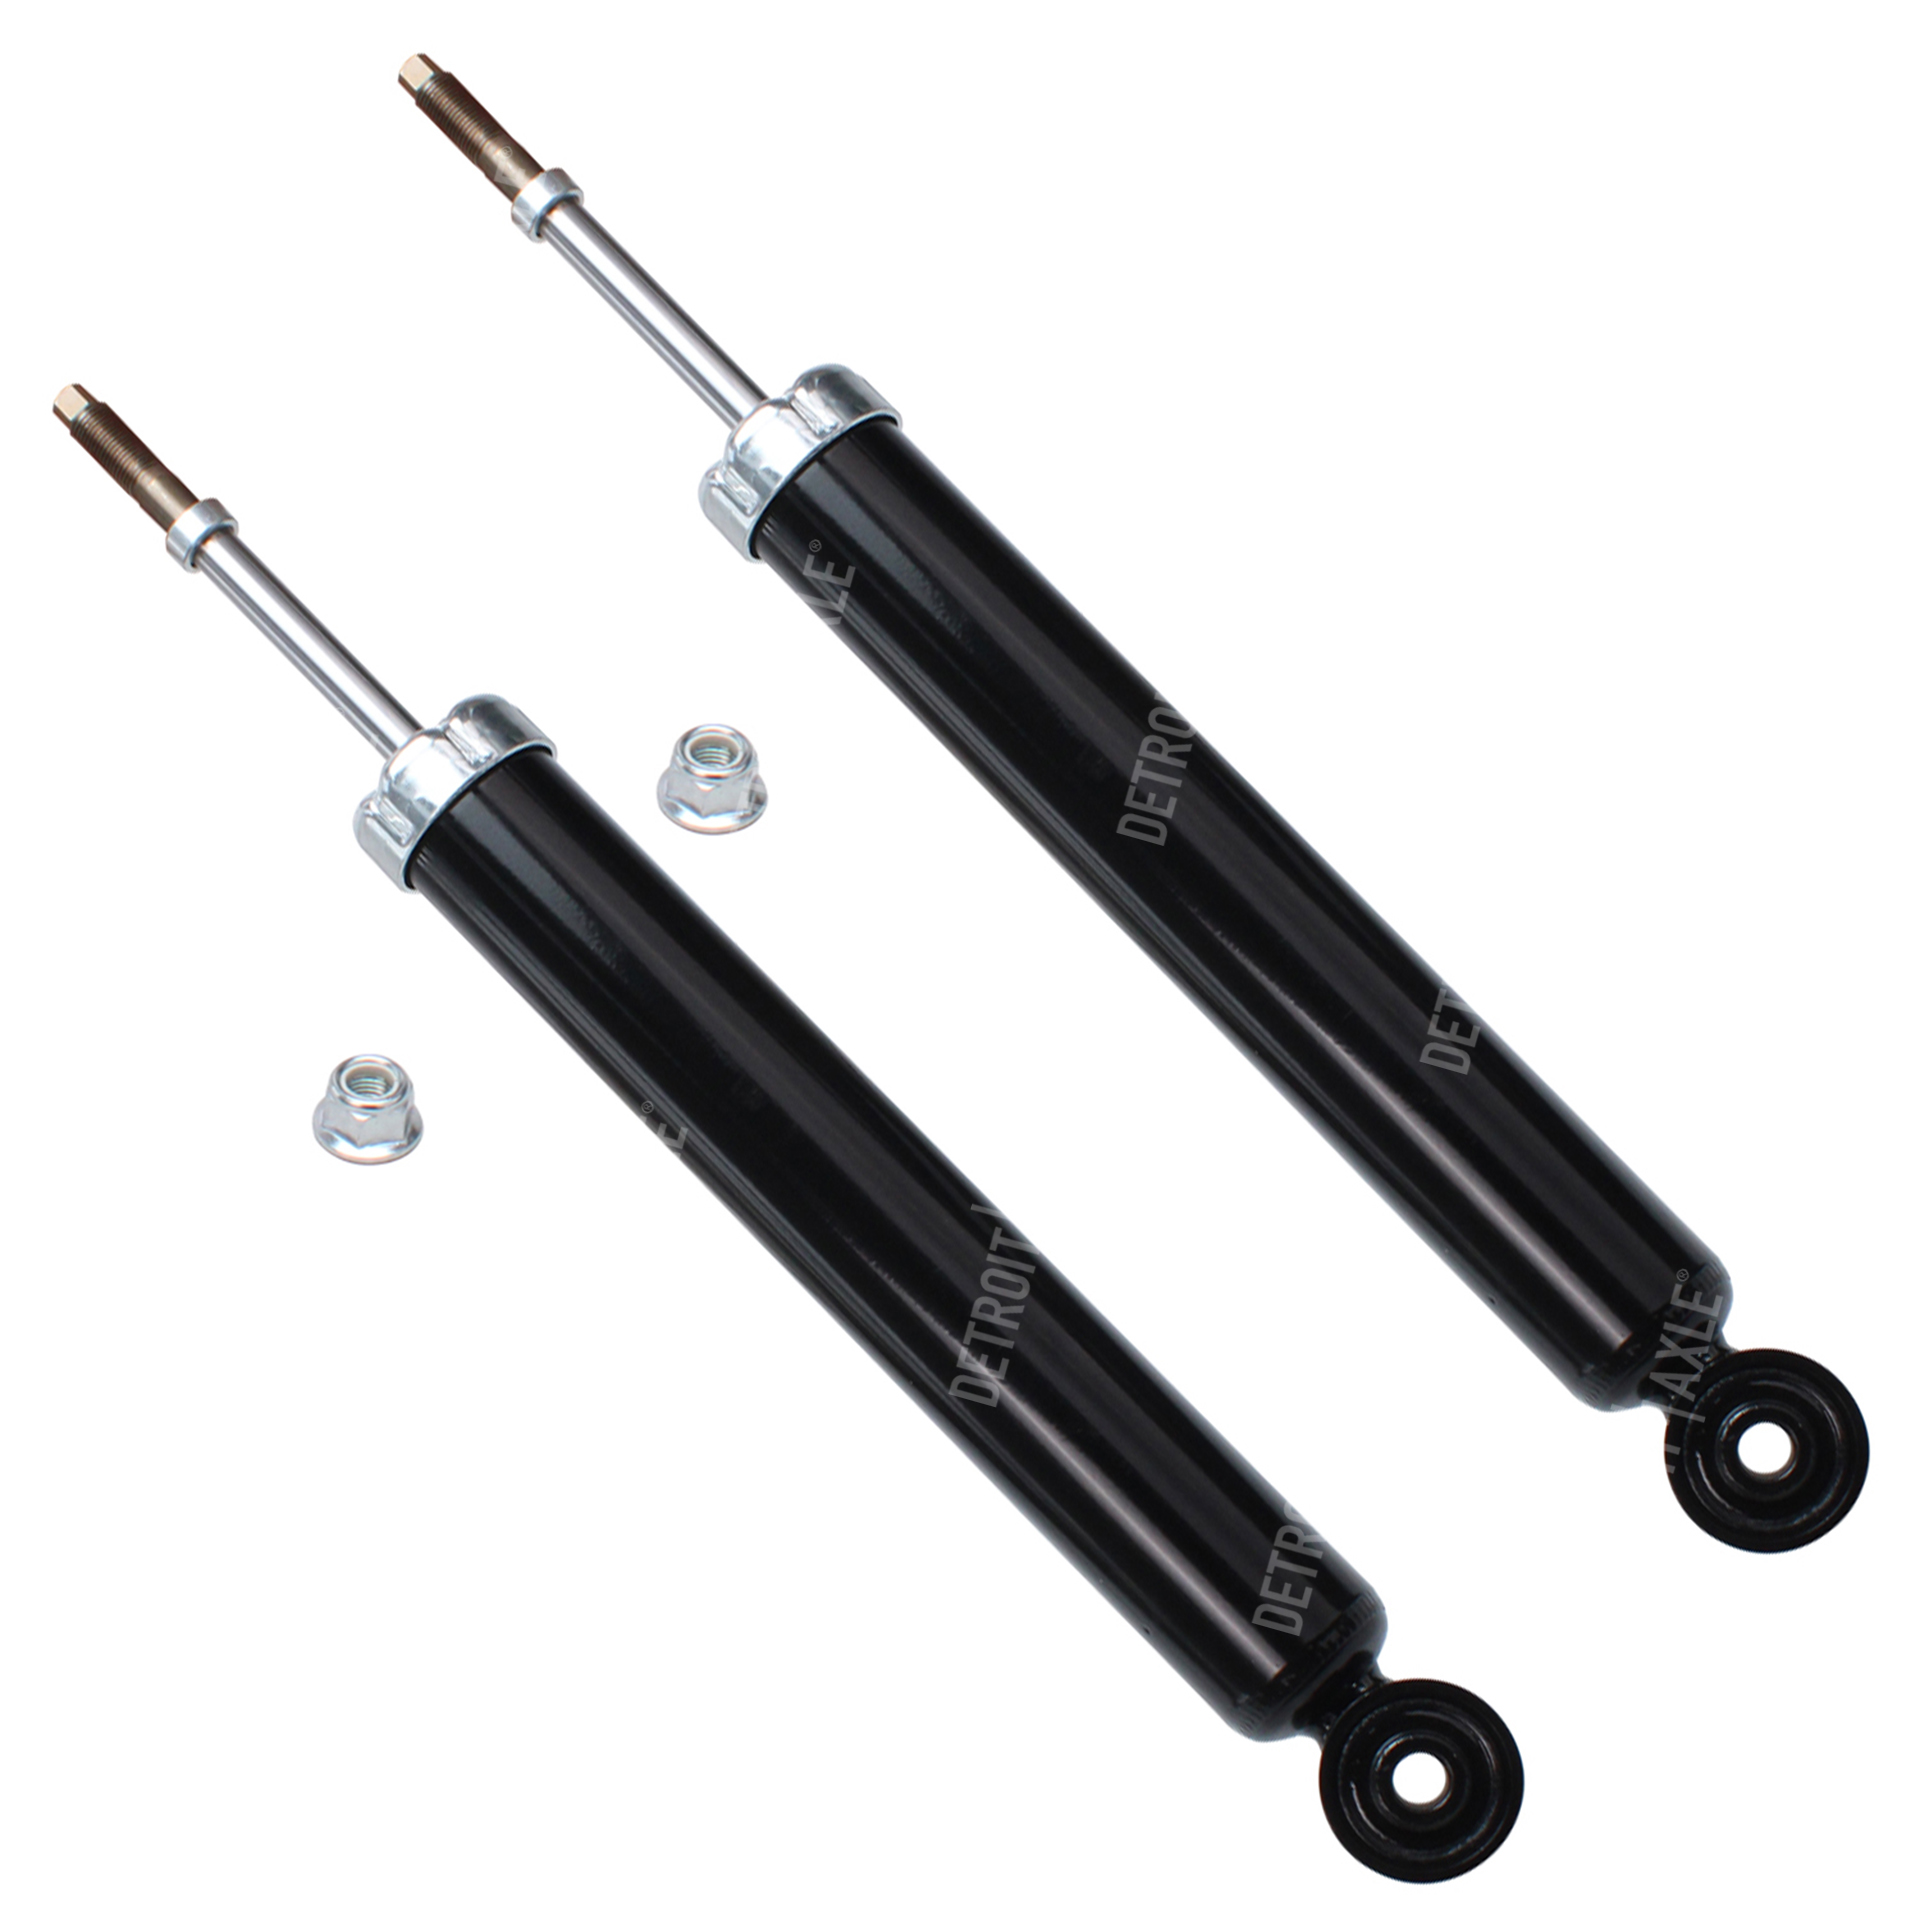 Pair - Rear Shock Absorber Set - Driver & Passenger Side fits - 2009-2014 Nissan Murano